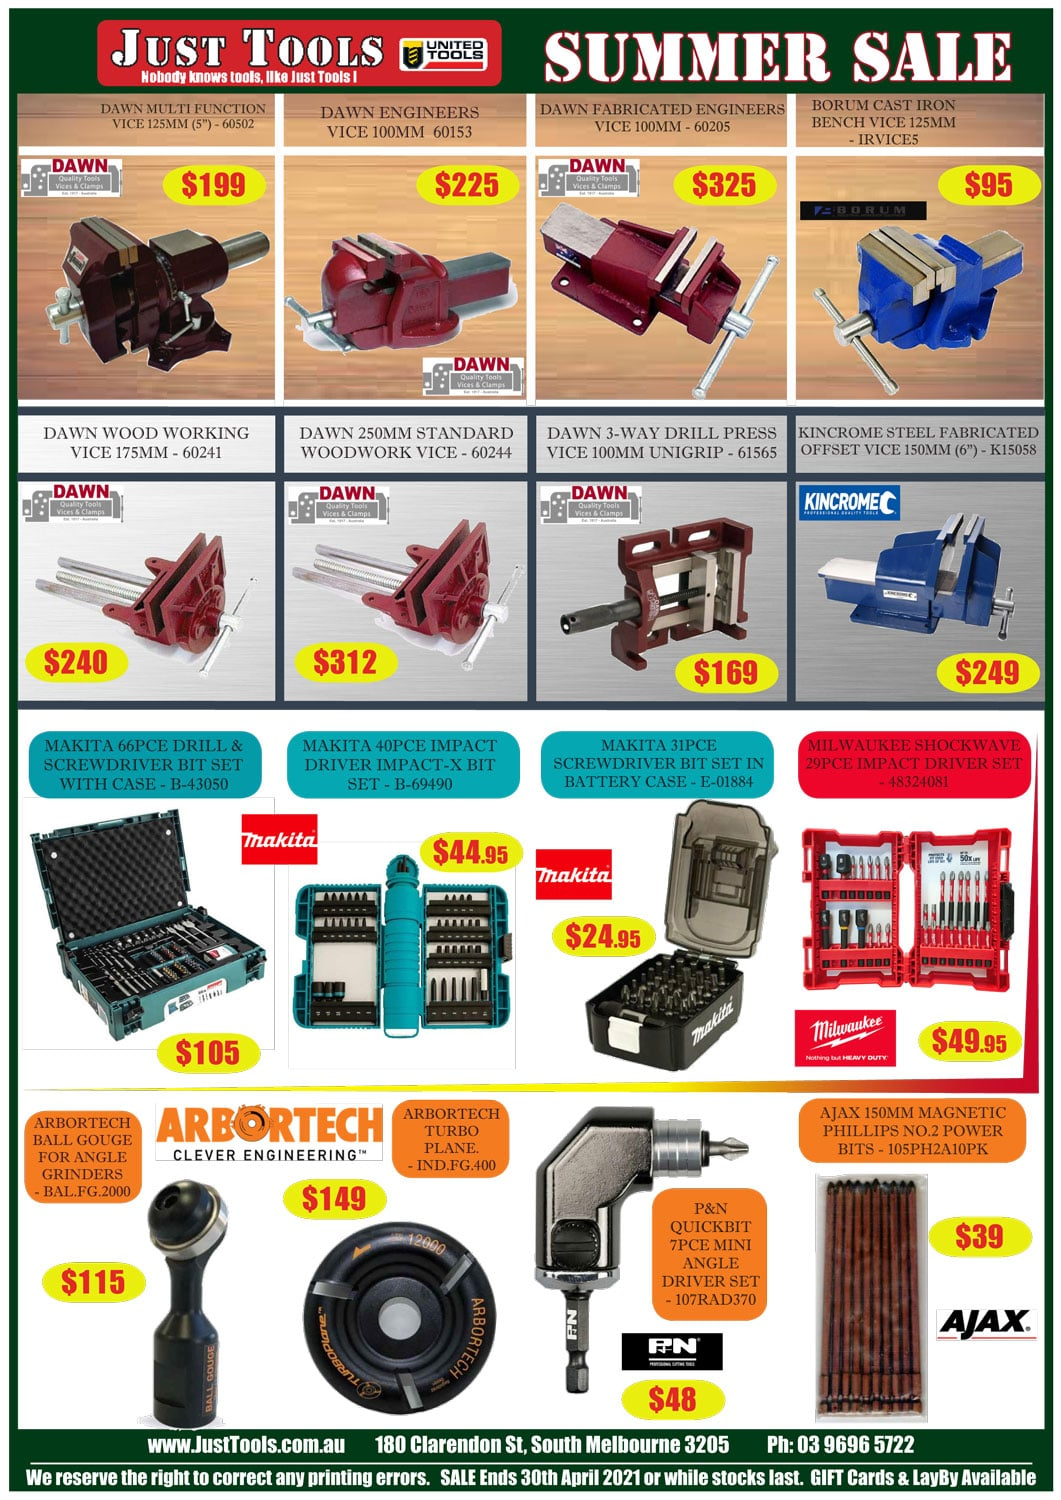 just-tools-summer-sale-page-9b-min.jpg